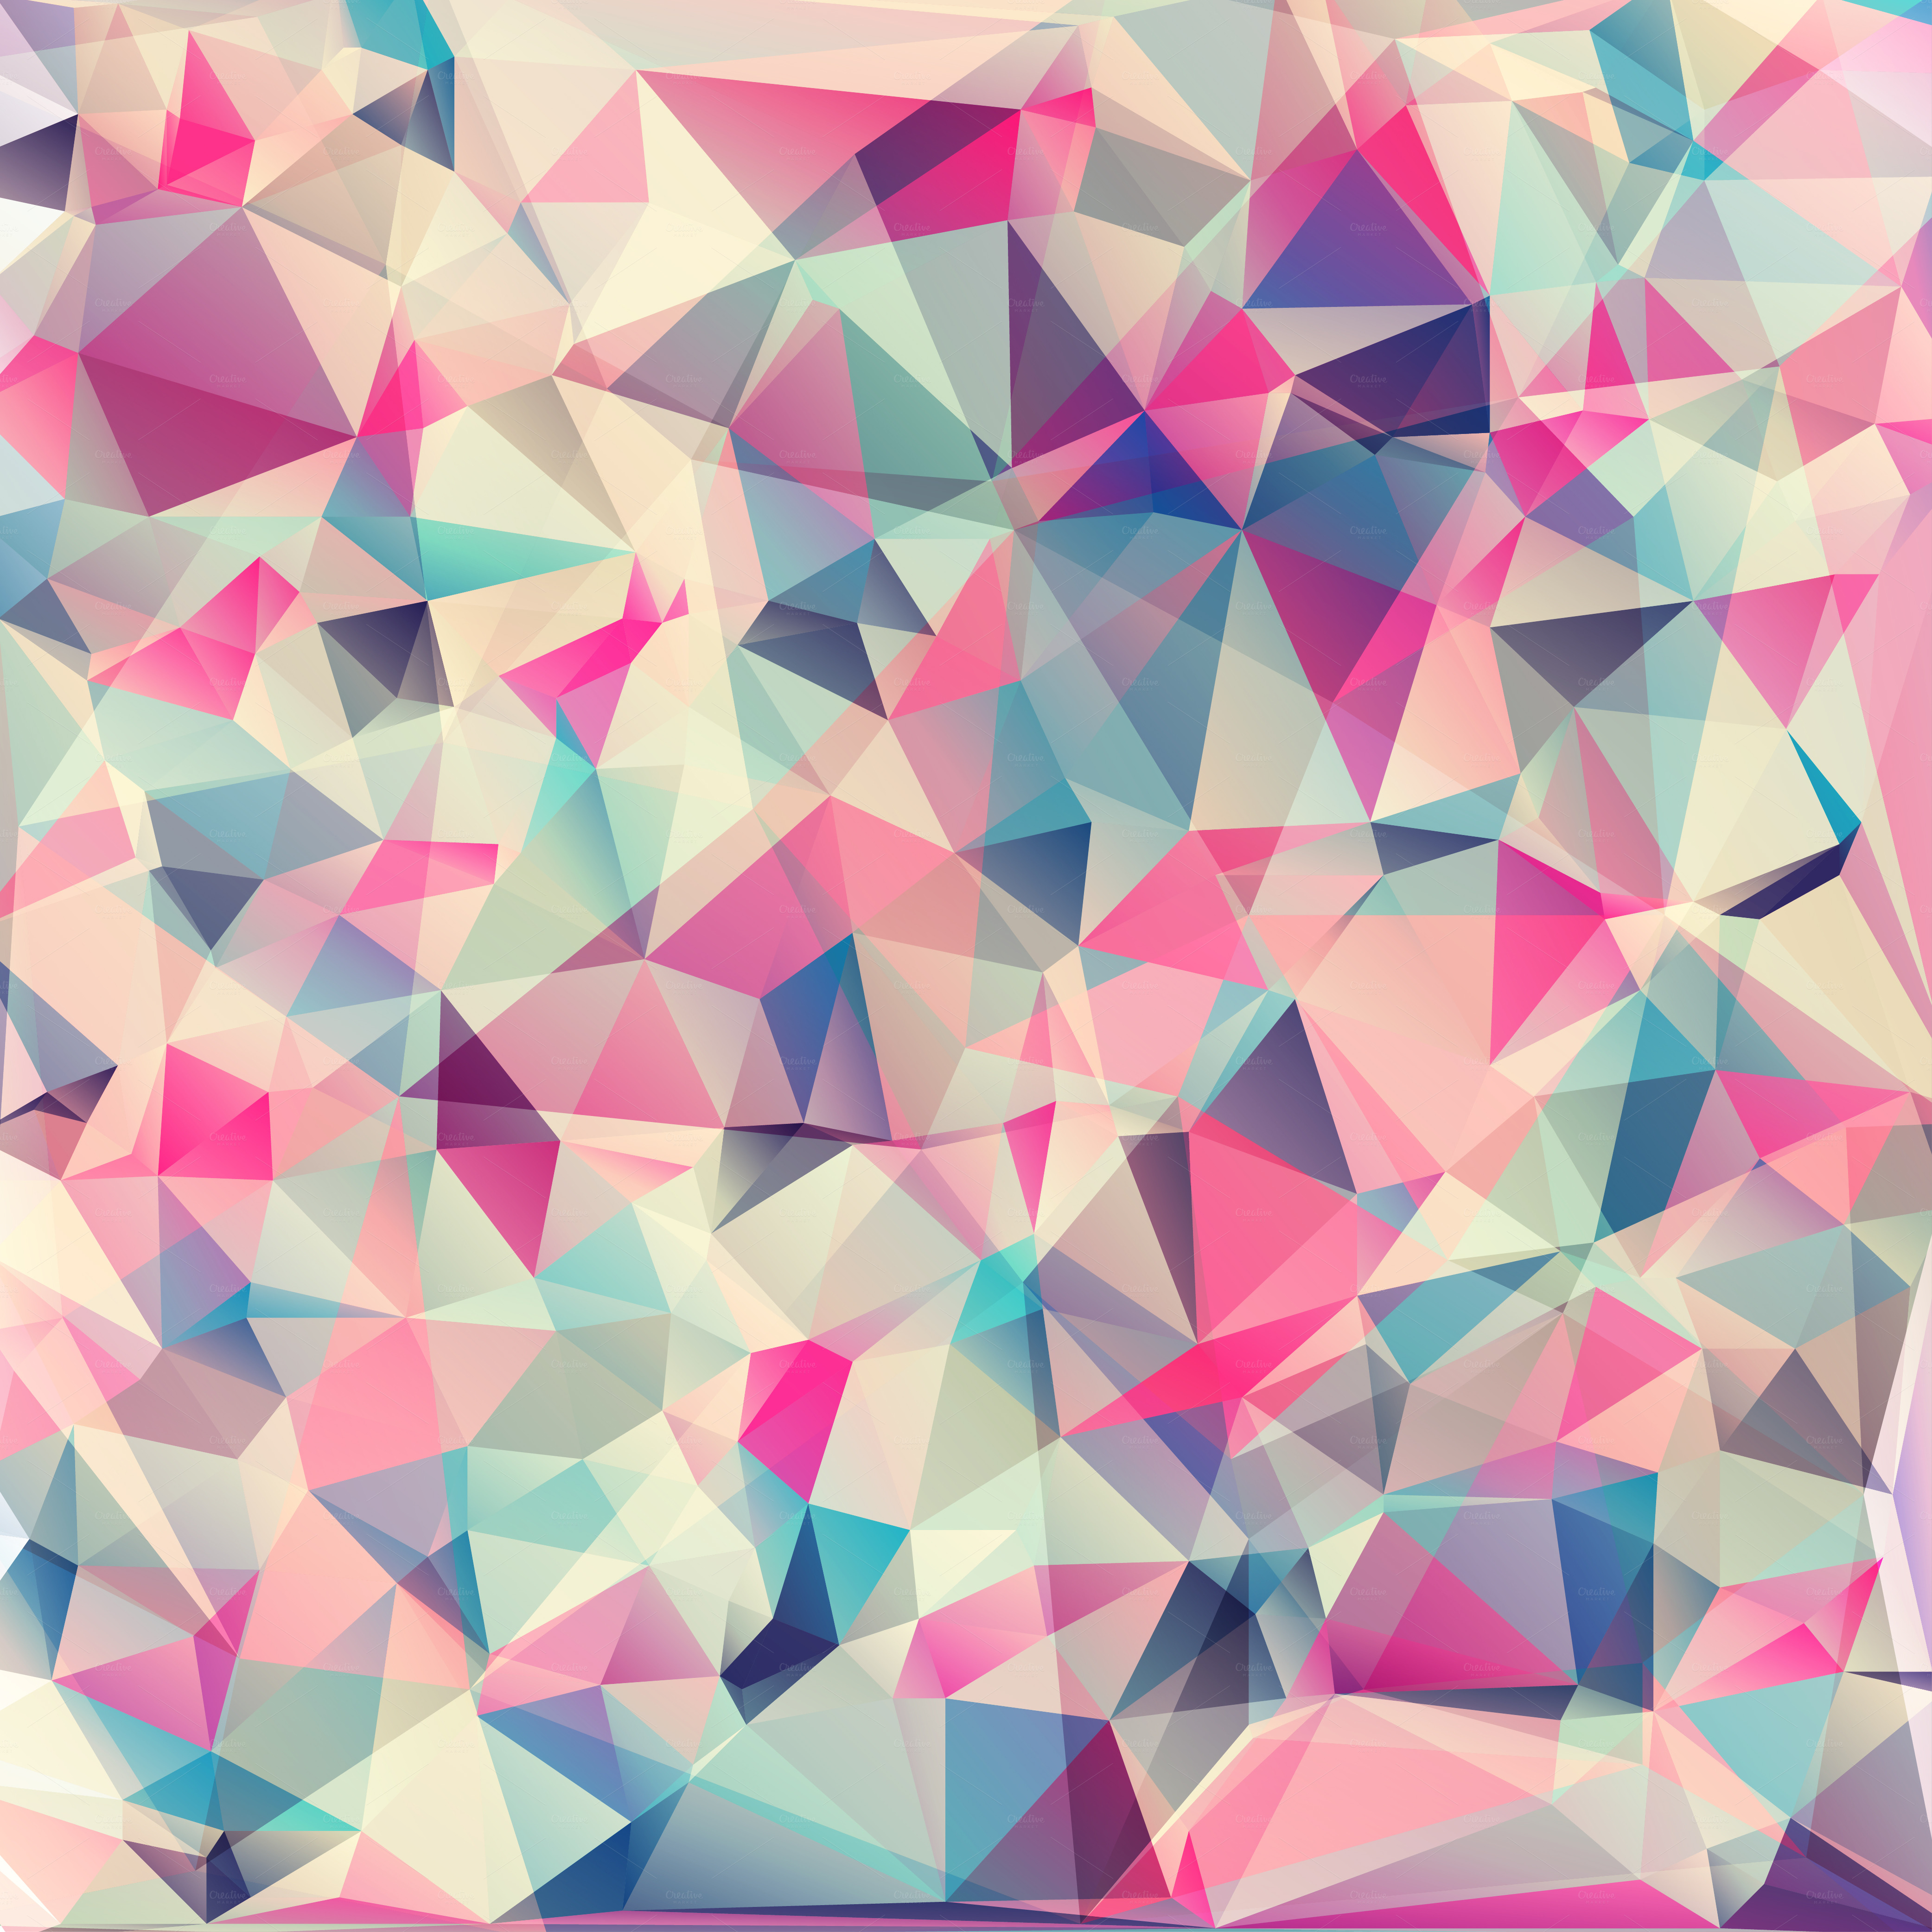 Abstract geometric backgrounds ~ Textures on Creative Market